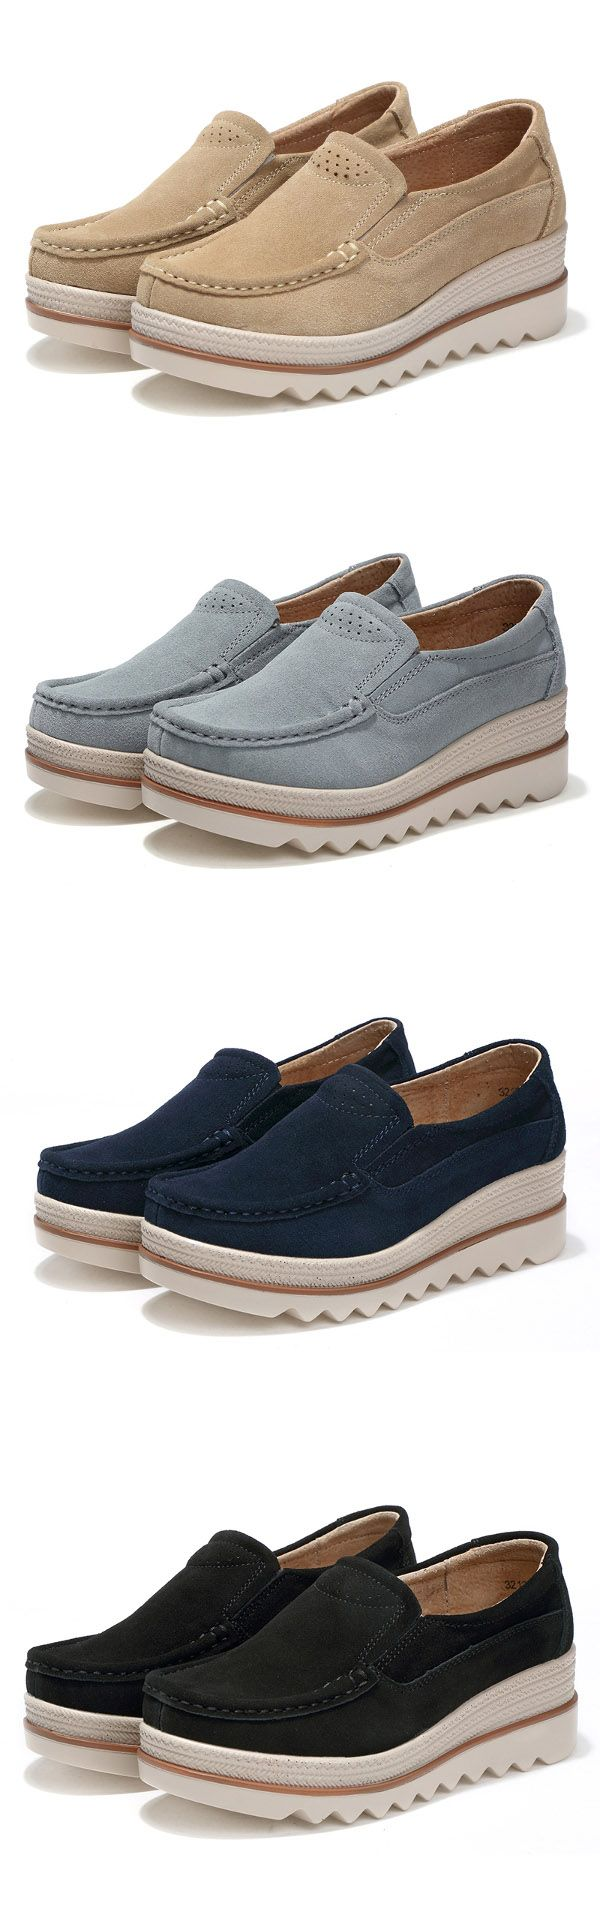 US$27.30 Womens Breathable Suede Round Toe Slip On Platform Shoes #platformshoes #casualshoes #wintershoes